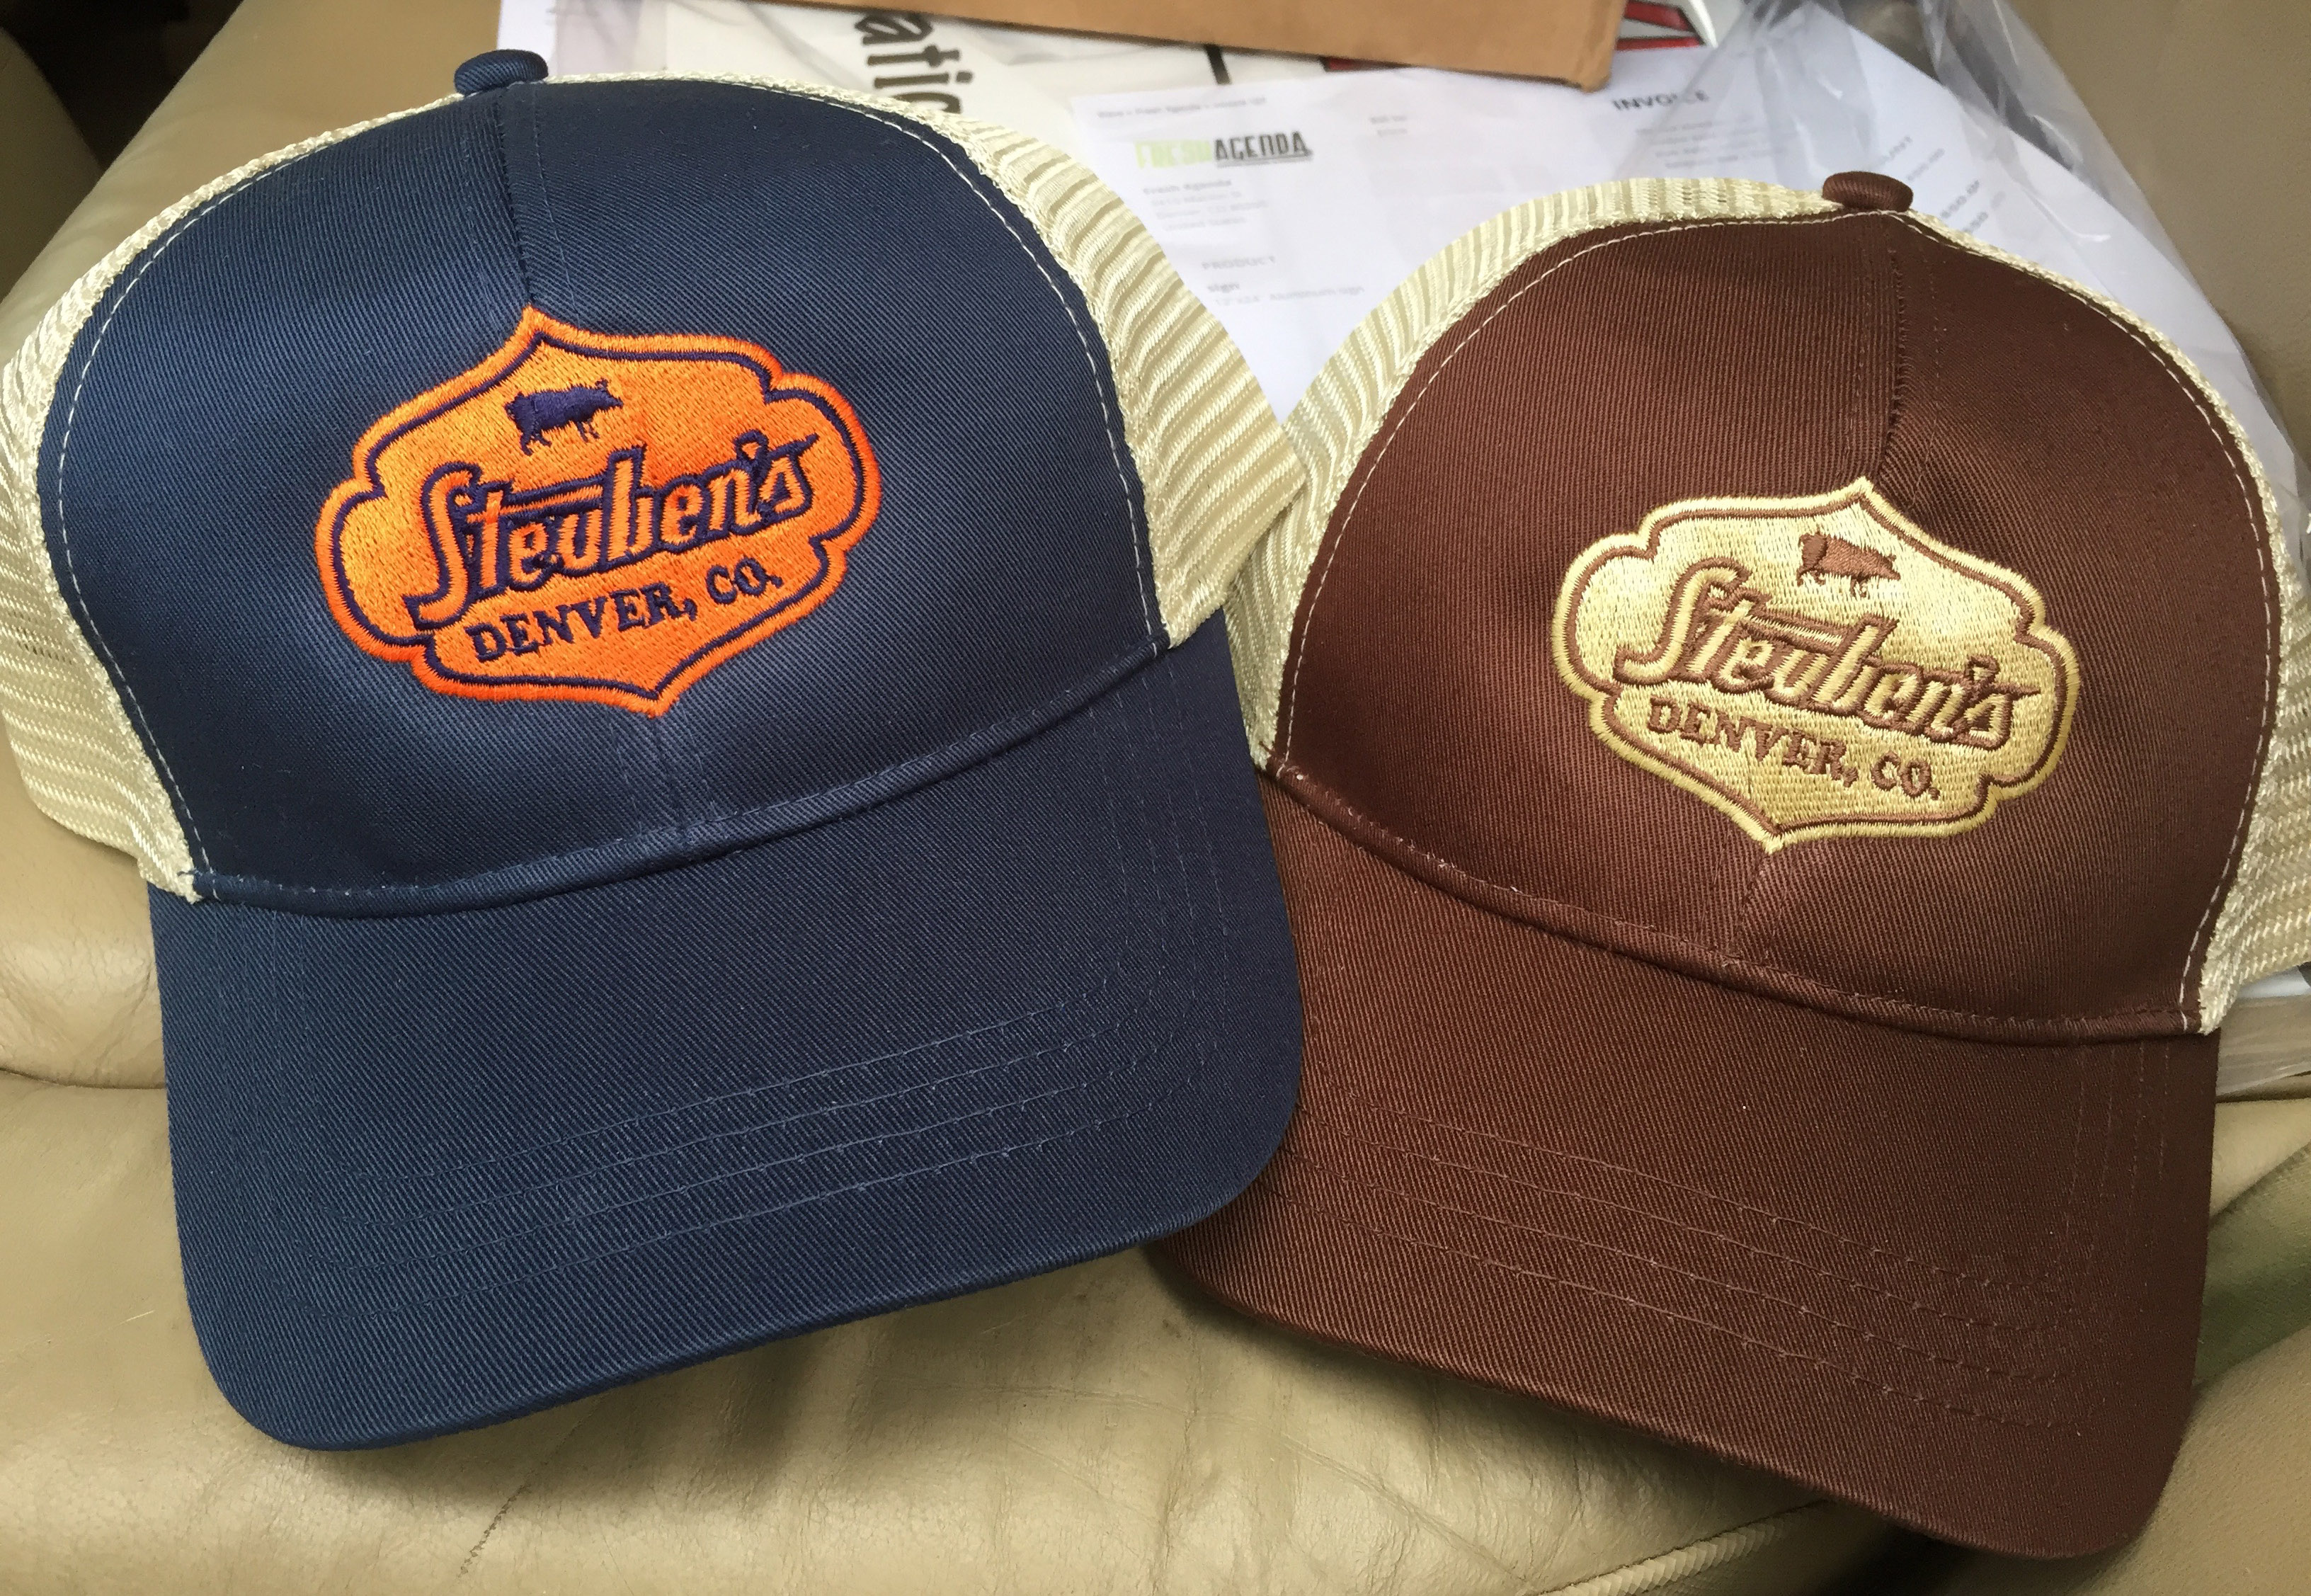 Steuben's custom embroidery hats